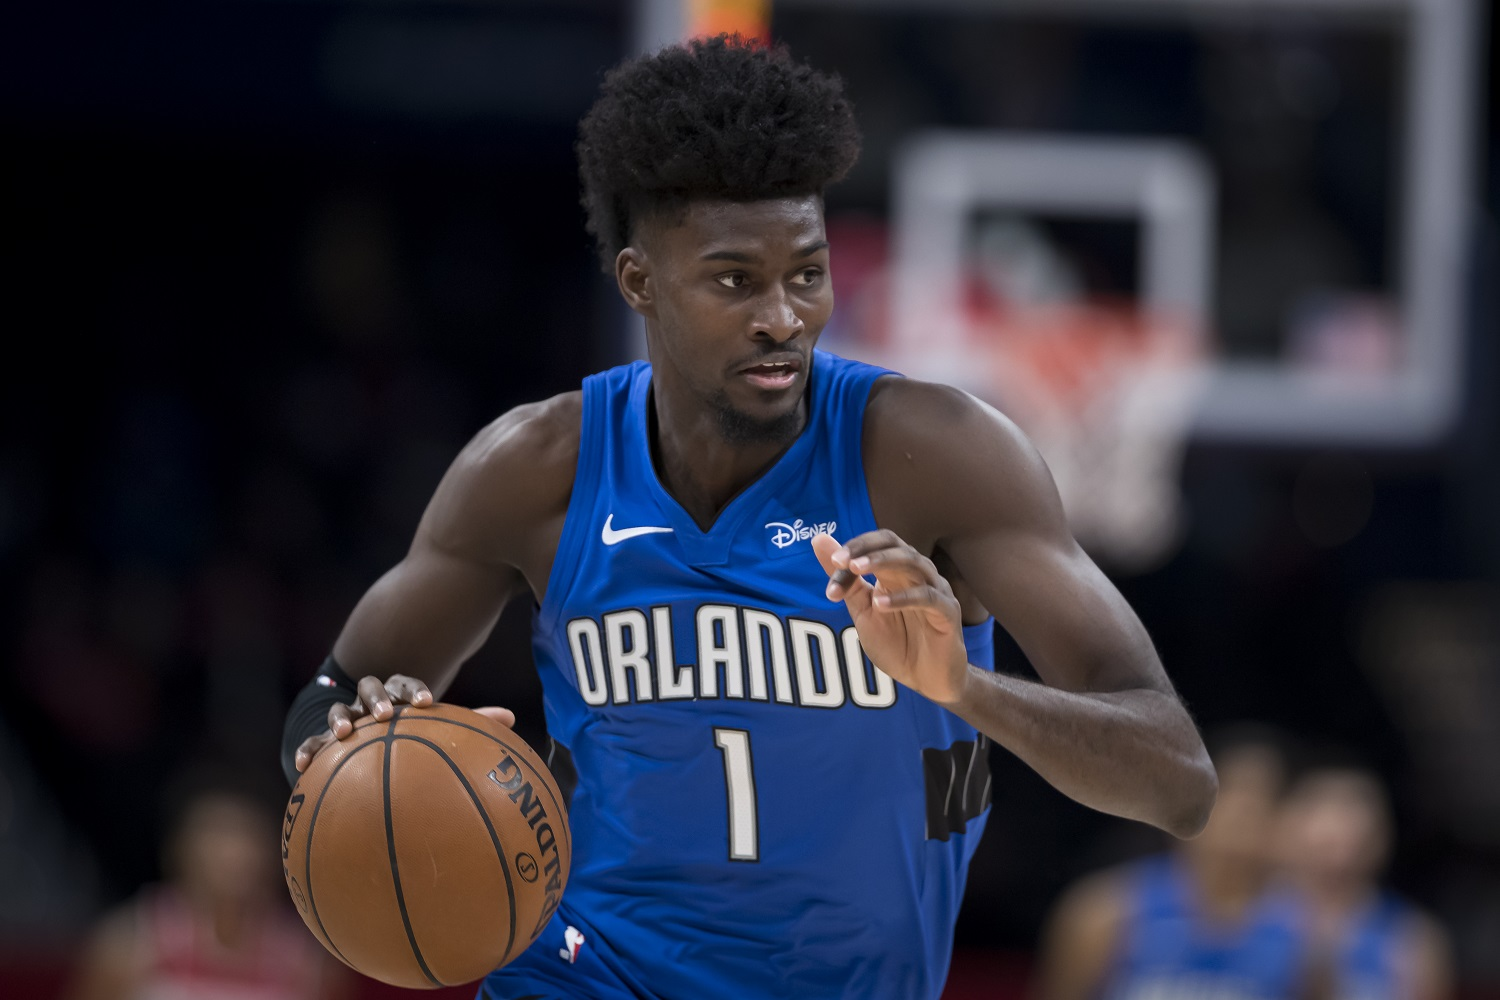 Orlando Magic forward Jonathan Isaac may have cost himself millions of dollars by tearing his ACL